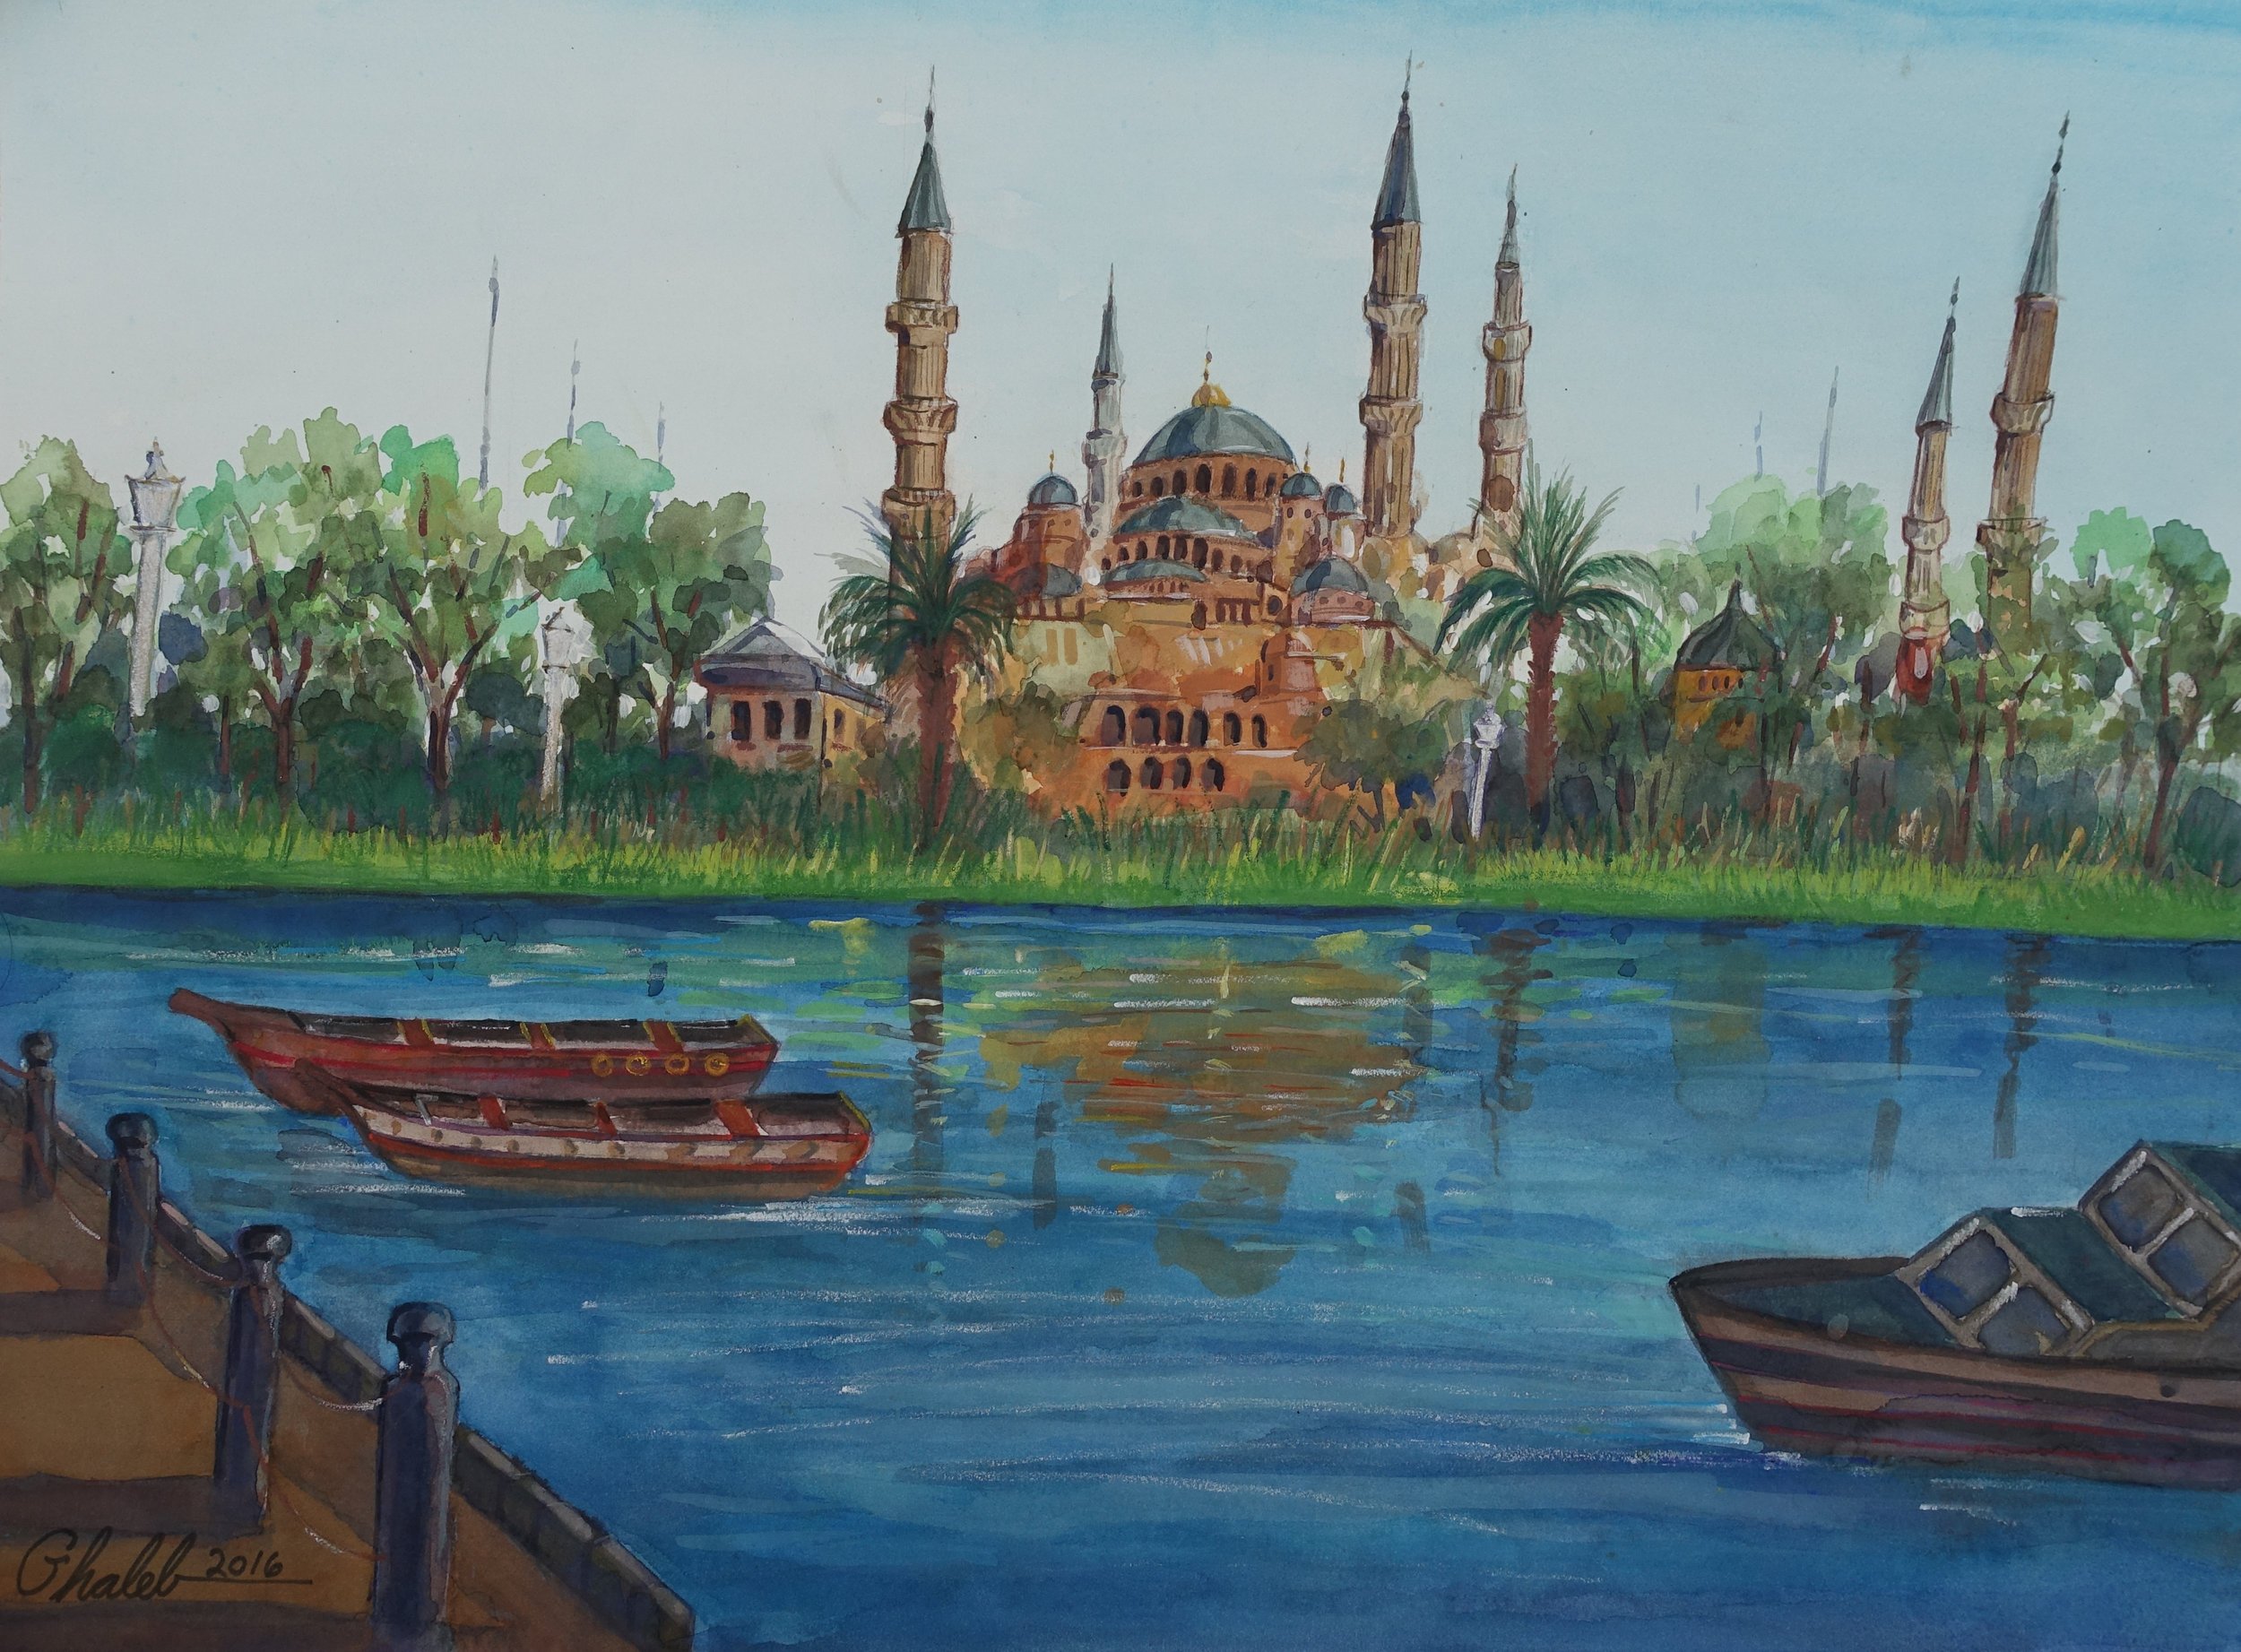 Ghaleb Al-Bihani, Blue Mosque Reflected in a River (made after a terror attack in Istanbul near the Blue Mosque), 2016.